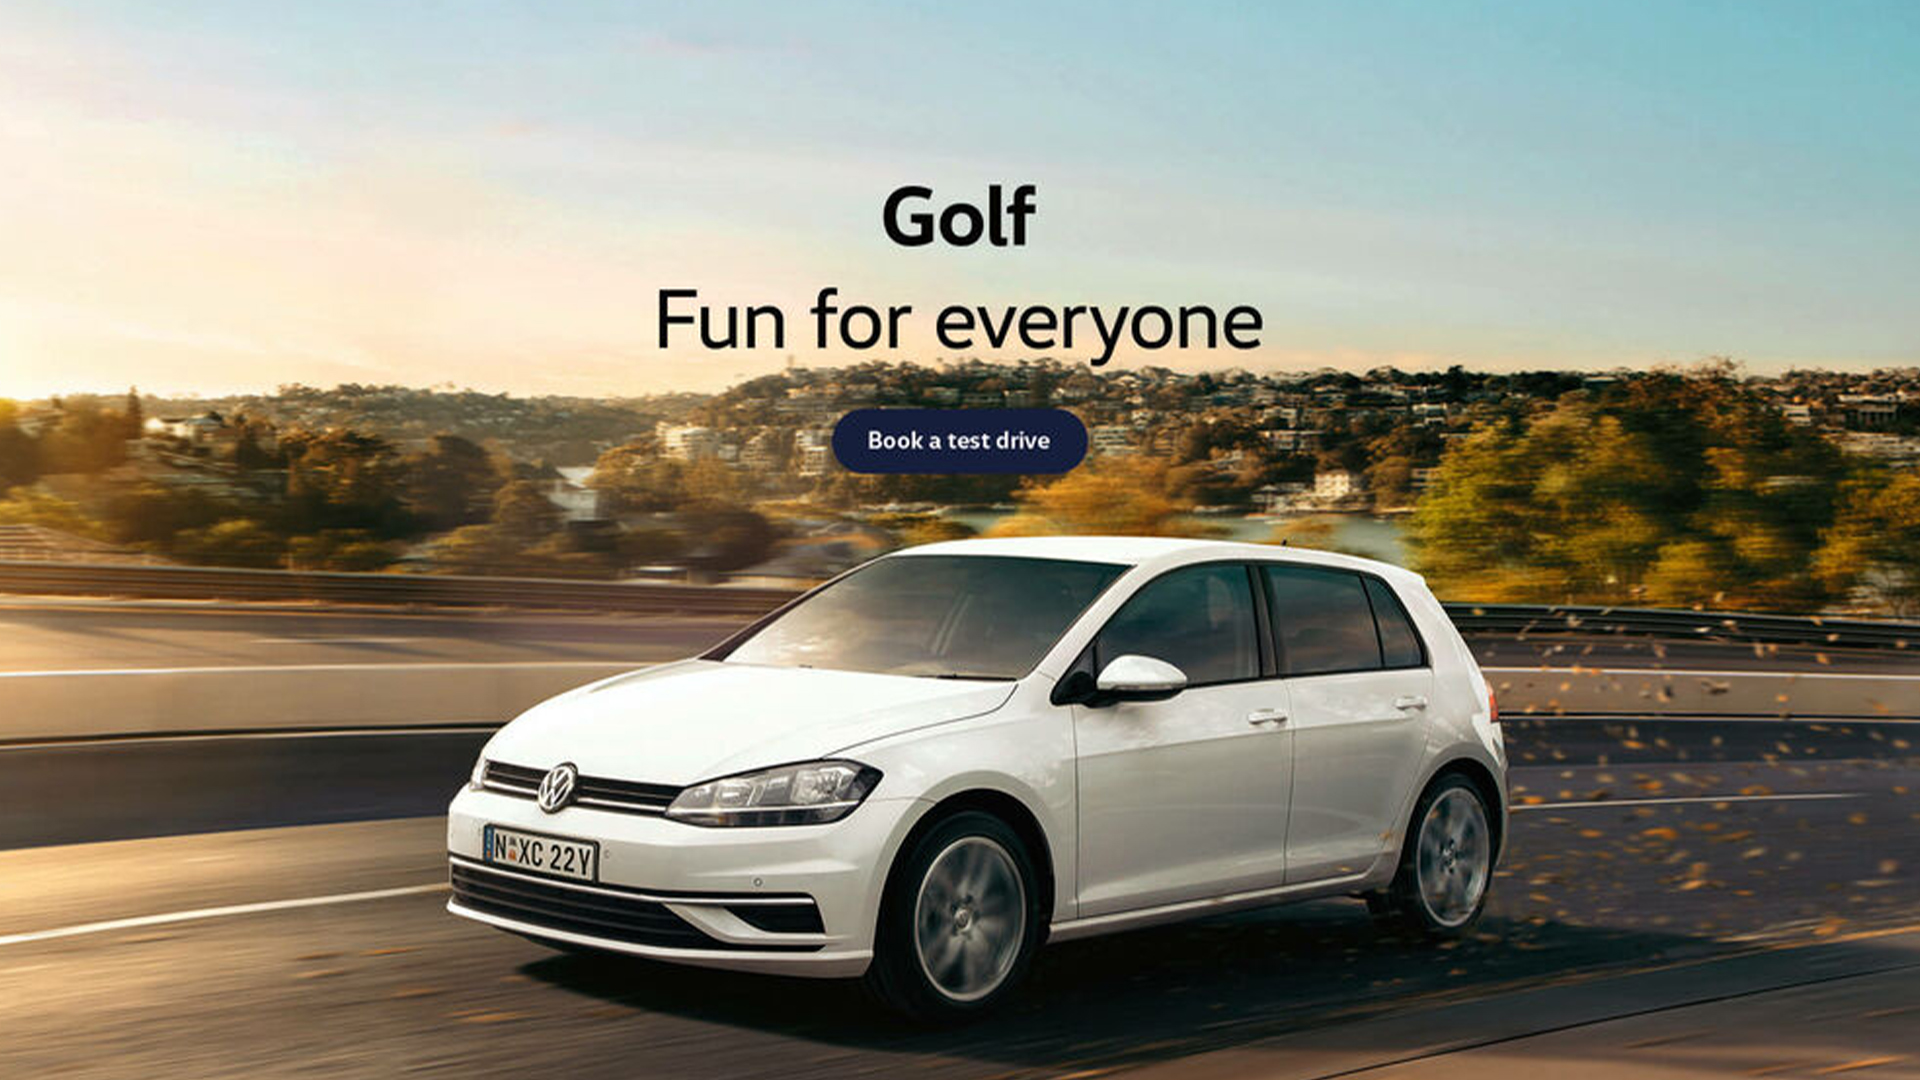 Volkswagen Golf. Fun for everyone. Test drive today at Cricks Volkswagen Sunshine Coast